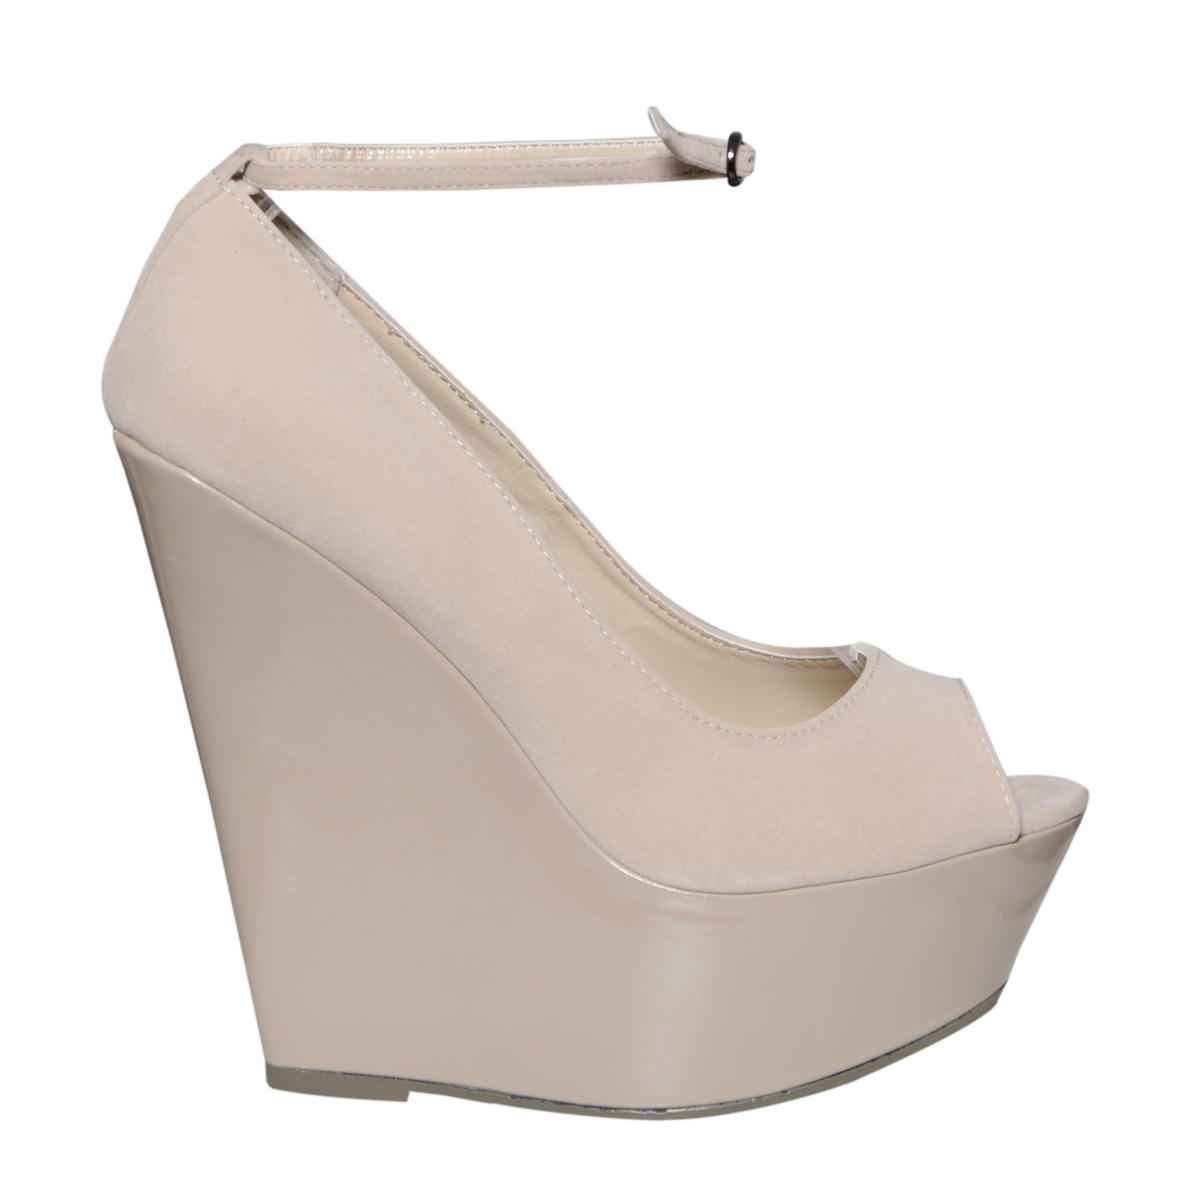 Nude Peeptoe Wedge Shoe Preview